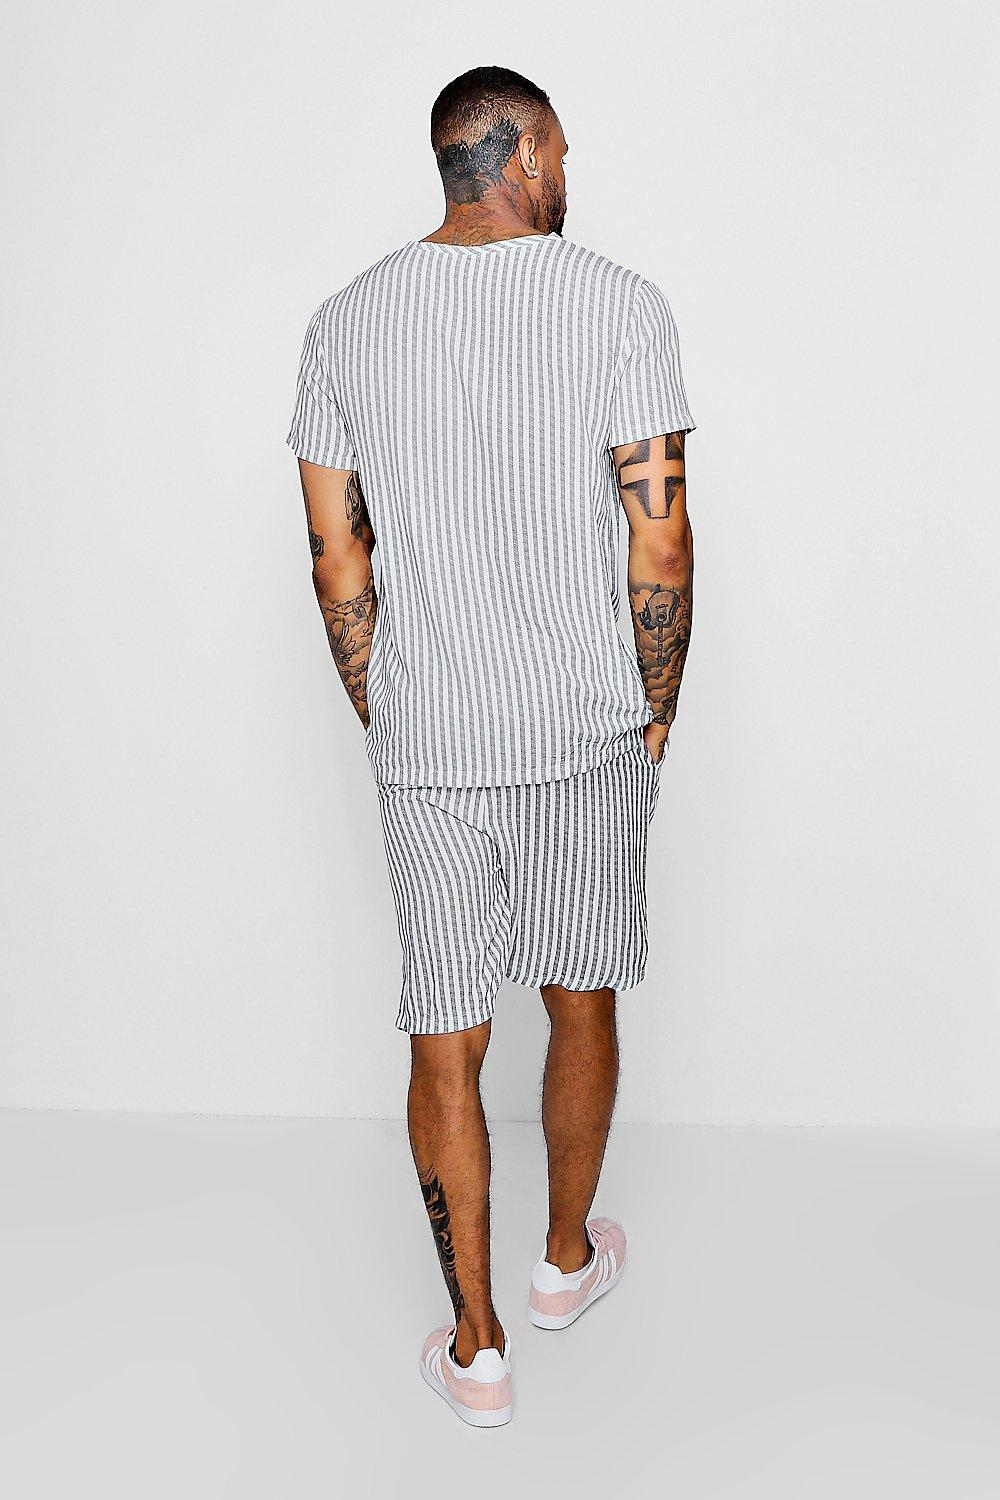 Woven T Stripe blue Shirt Vertical 5vw1AYqA